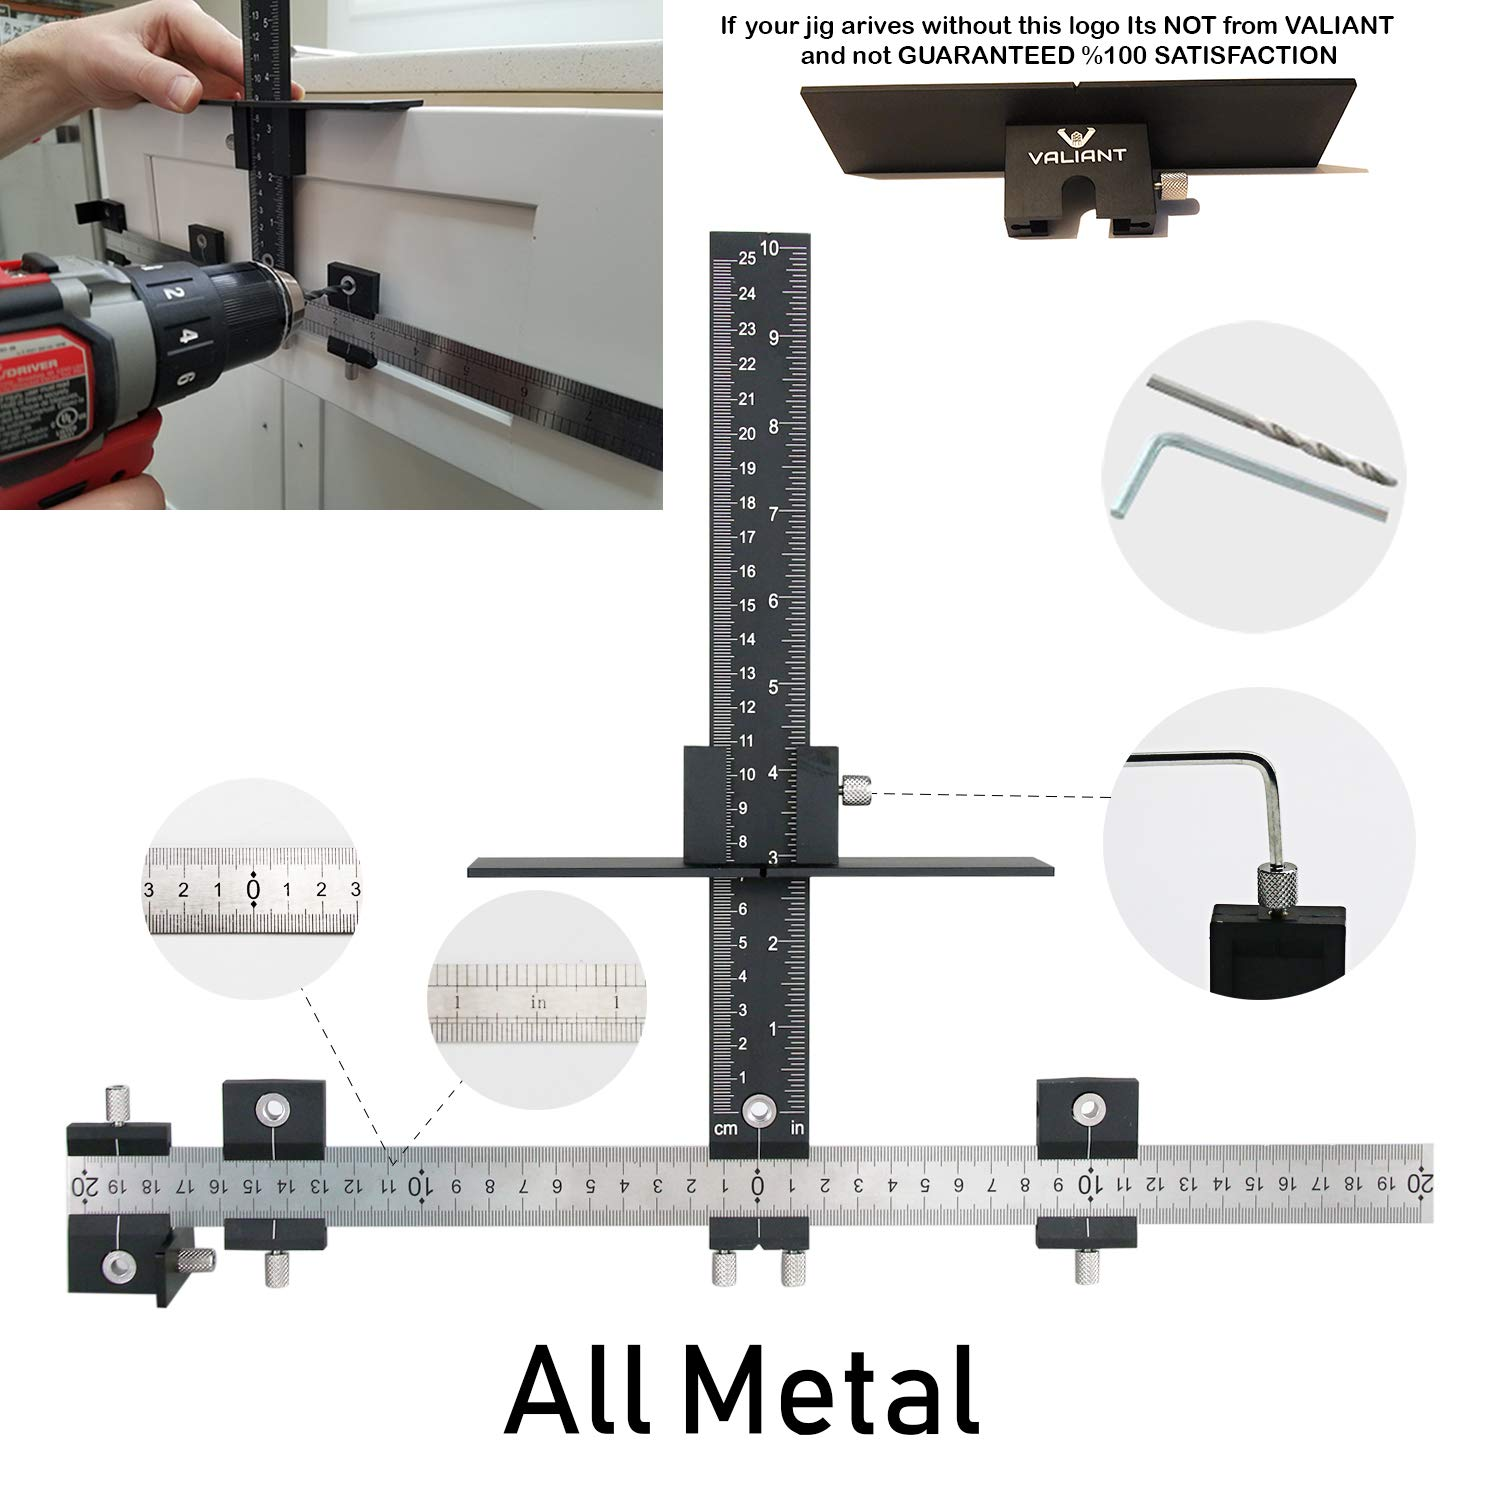 Valiant Cabinet Hardware Jig | Drawer Knobs and Pulls Template Tool for Drilling Holes on Wood | Adjustable Drill Guide Tools for Doweling, Boring and Mounting Door Handles | Made All from Aluminum by Valiant (Image #1)